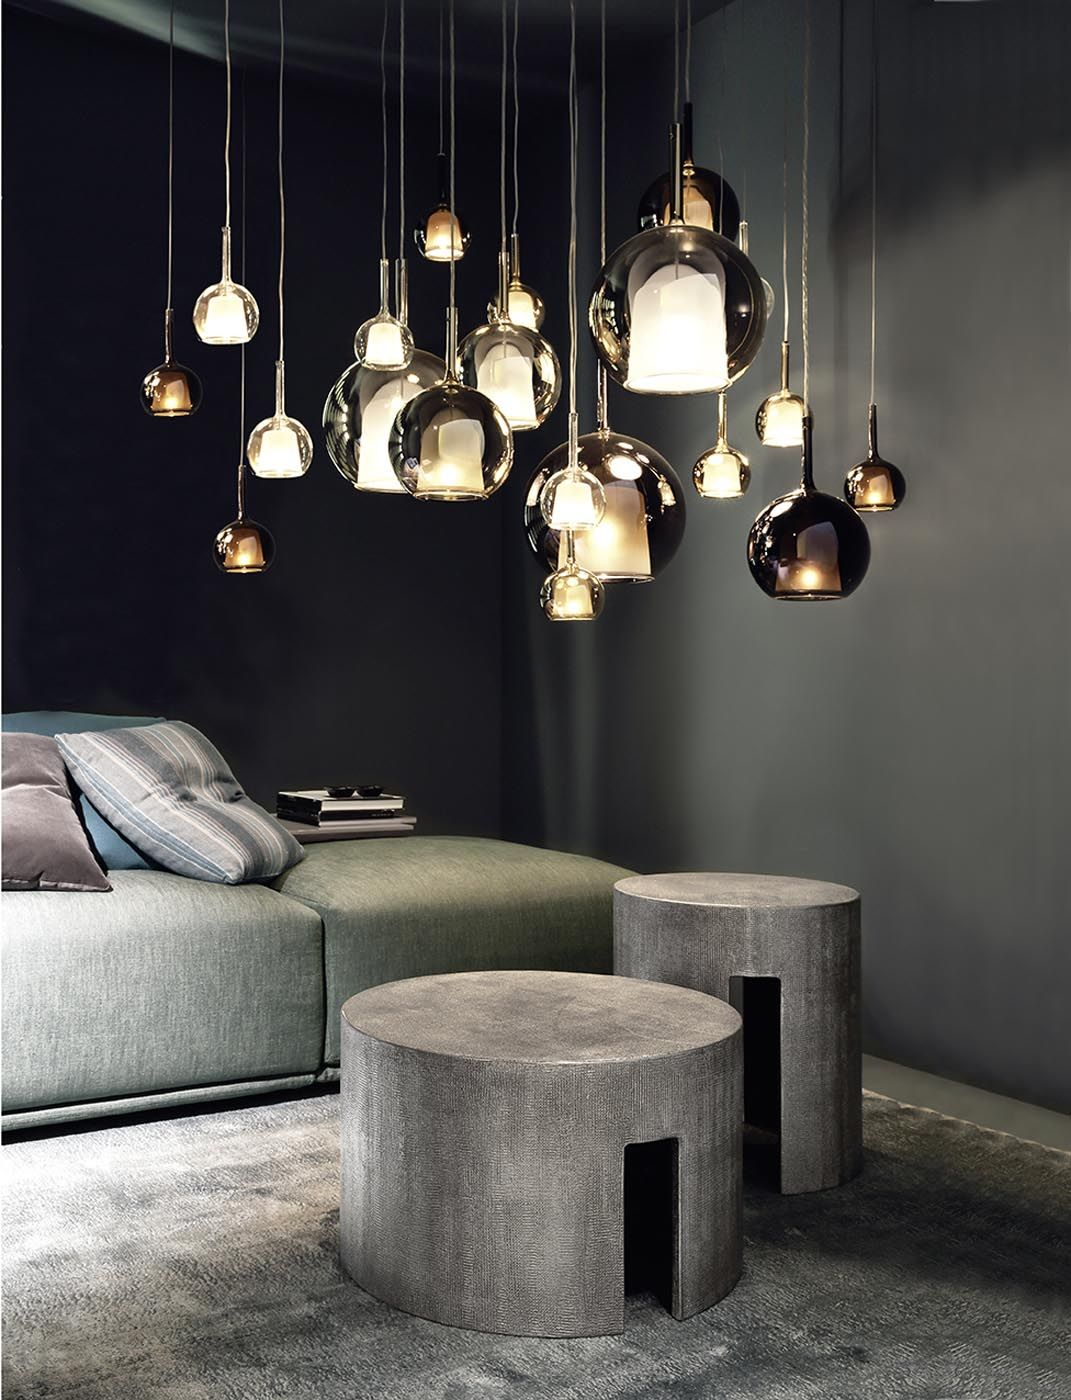 Glo | Penta - lampade / lighting | Pinterest - Lampen, Verlichting ...